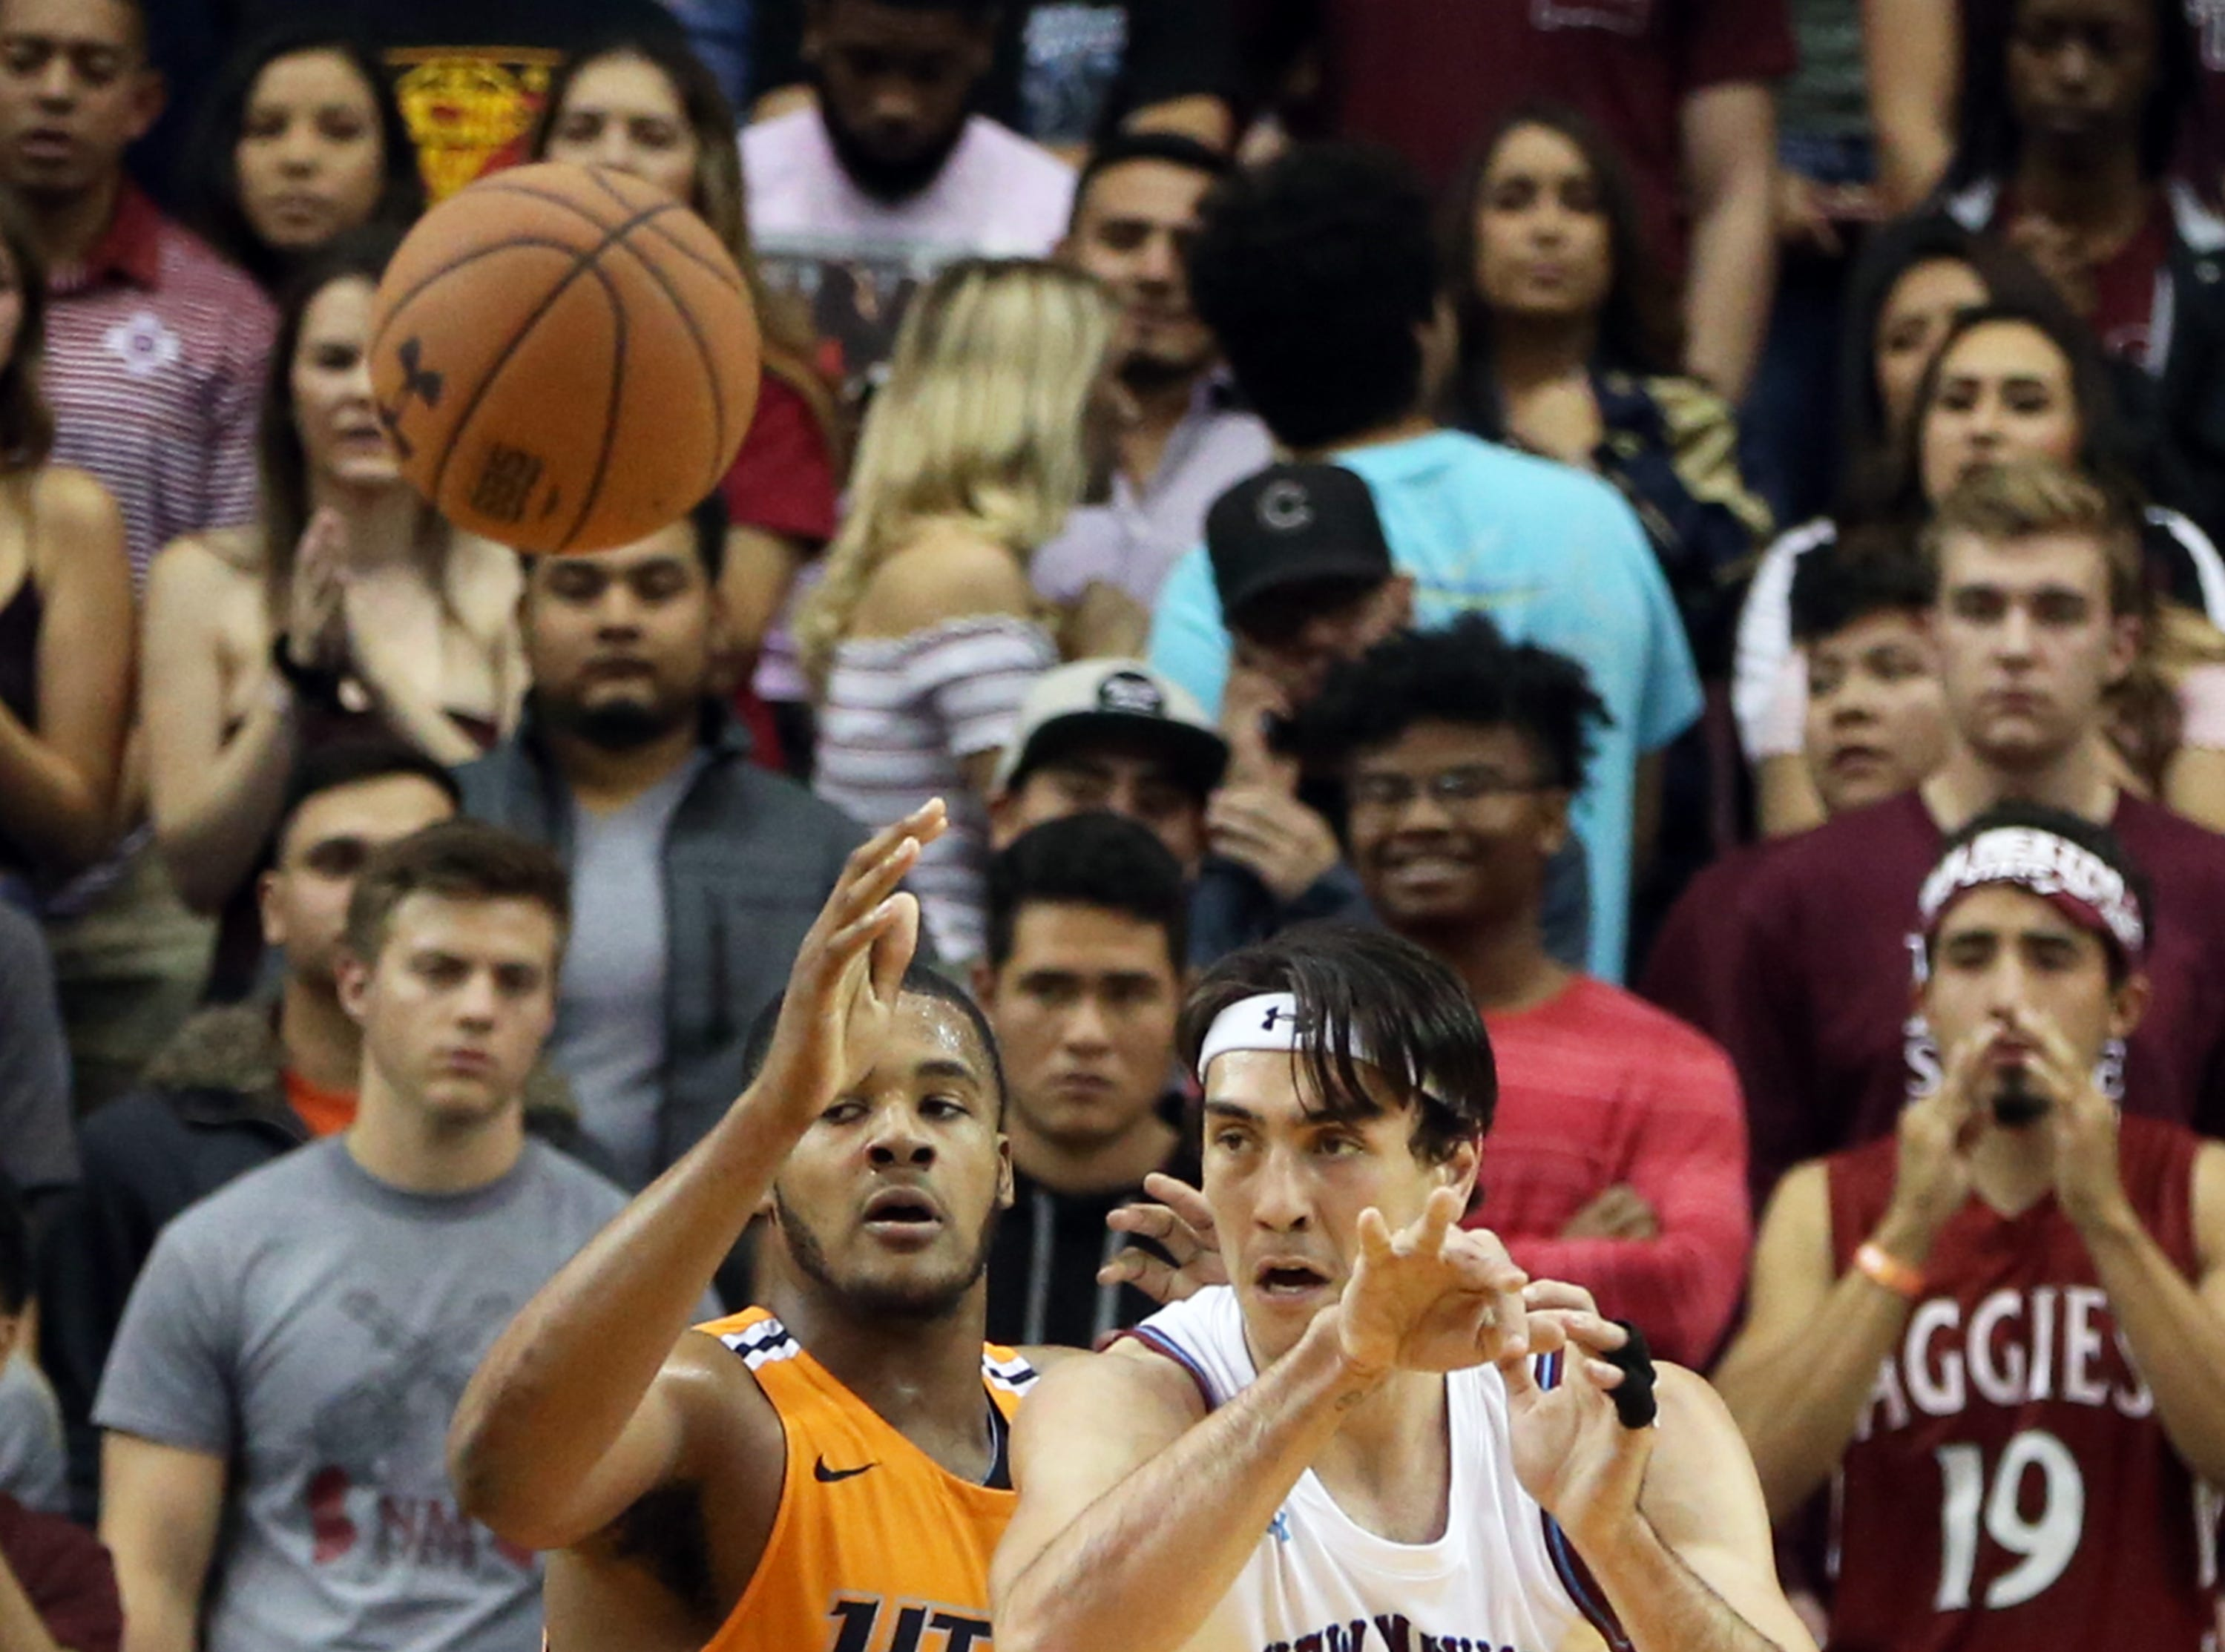 Ivan Aurrecoechea, 15, of NMSU finds an outlet while getting pressure from UTEP's Efe Odigie, 32, Friday night.